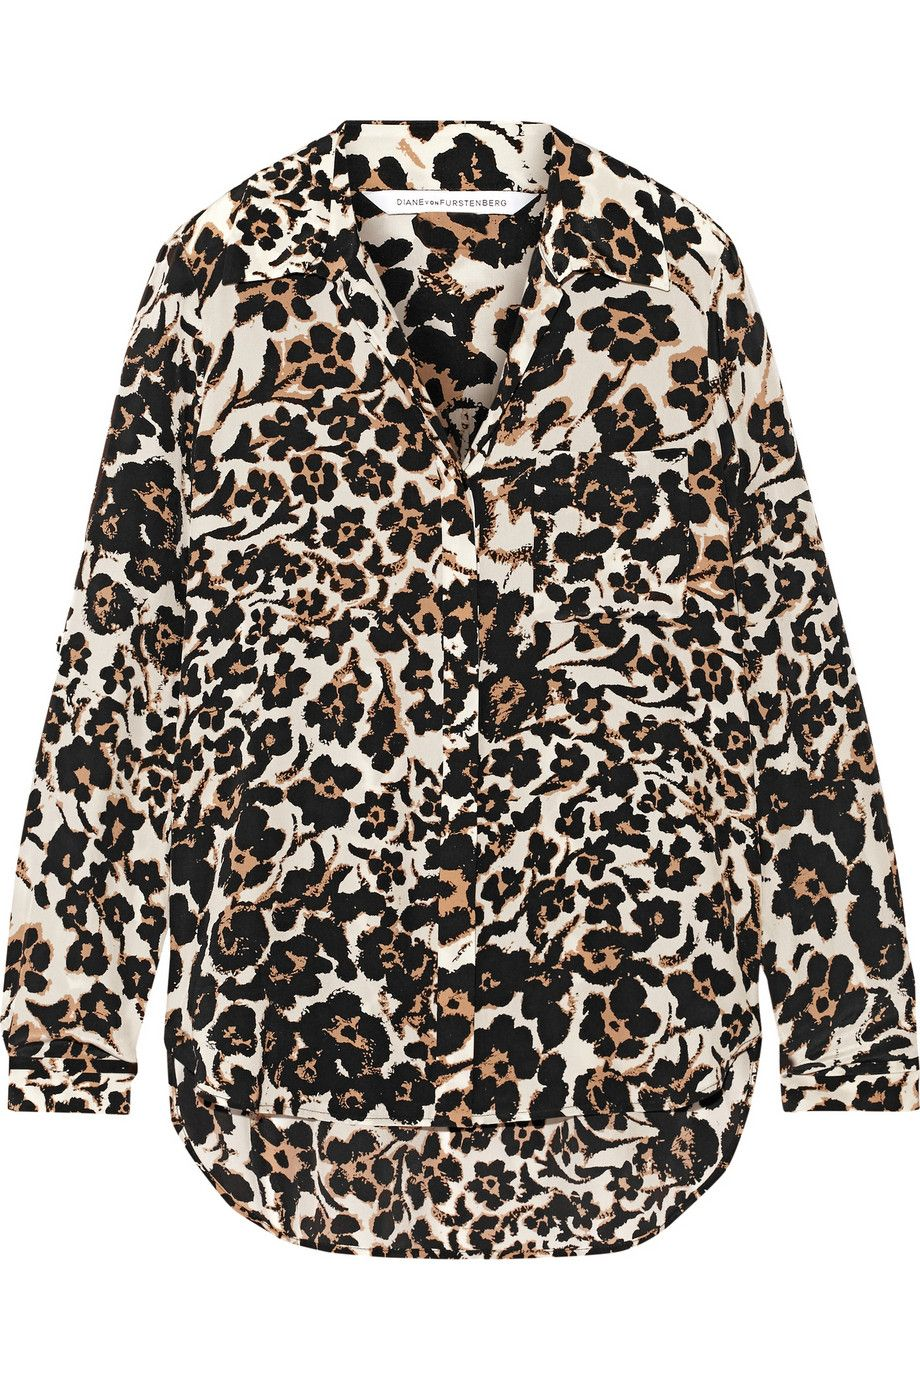 DIANE VON FURSTENBERG Lorelei Printed Silk Shirt. #dianevonfurstenberg #cloth #shirt